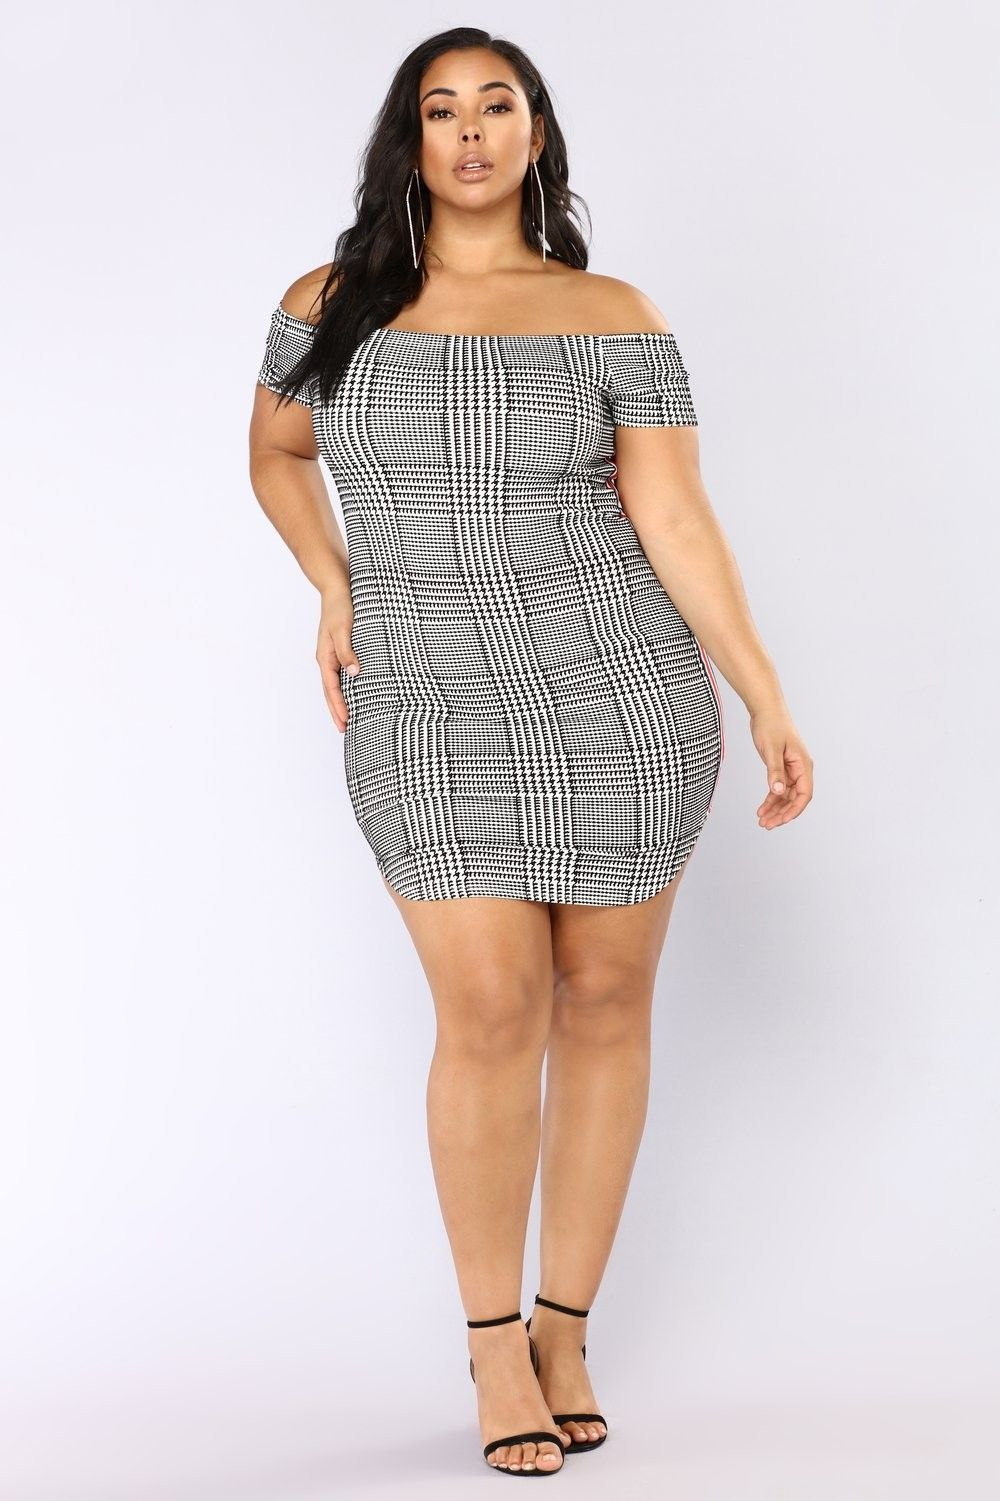 Plus Size Race You There Houndstooth Dress - Black/White $24.99 ...